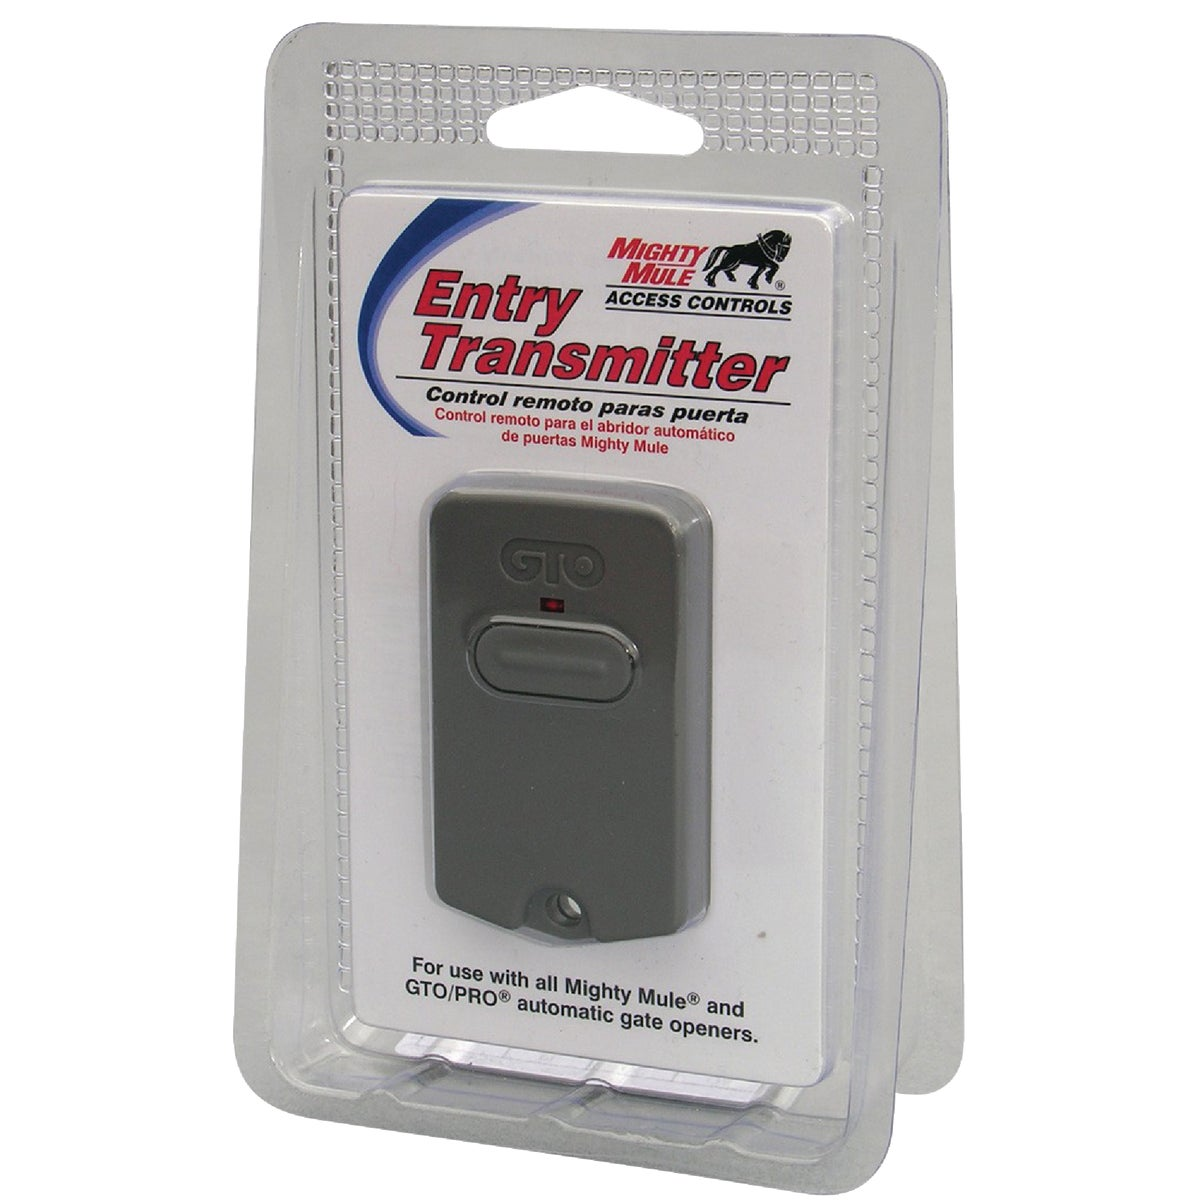 ENTRY TRANSMITTER - FM135 by Gto Inc